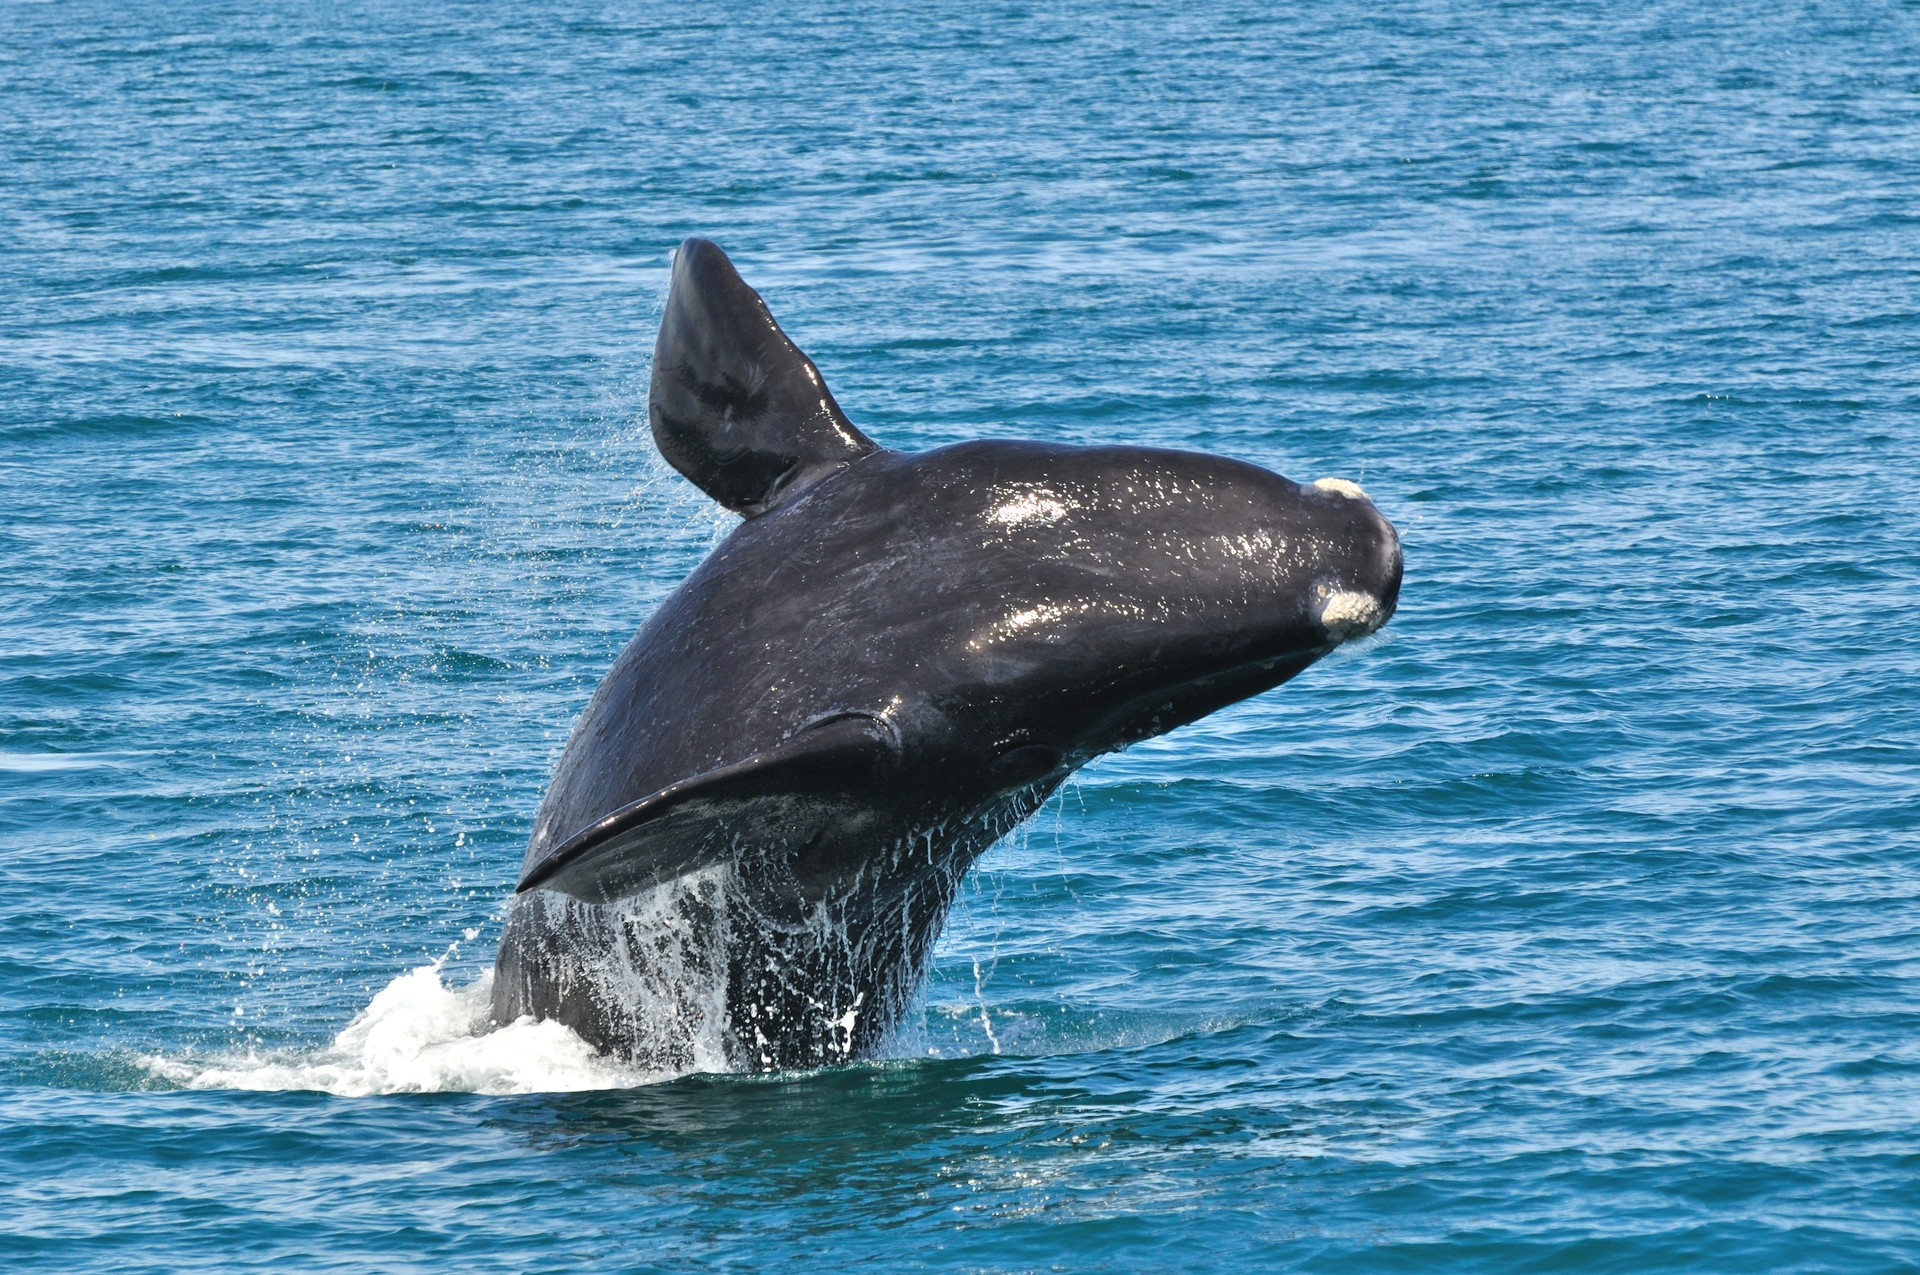 Southern Right Whale breaching off Garden Route coast